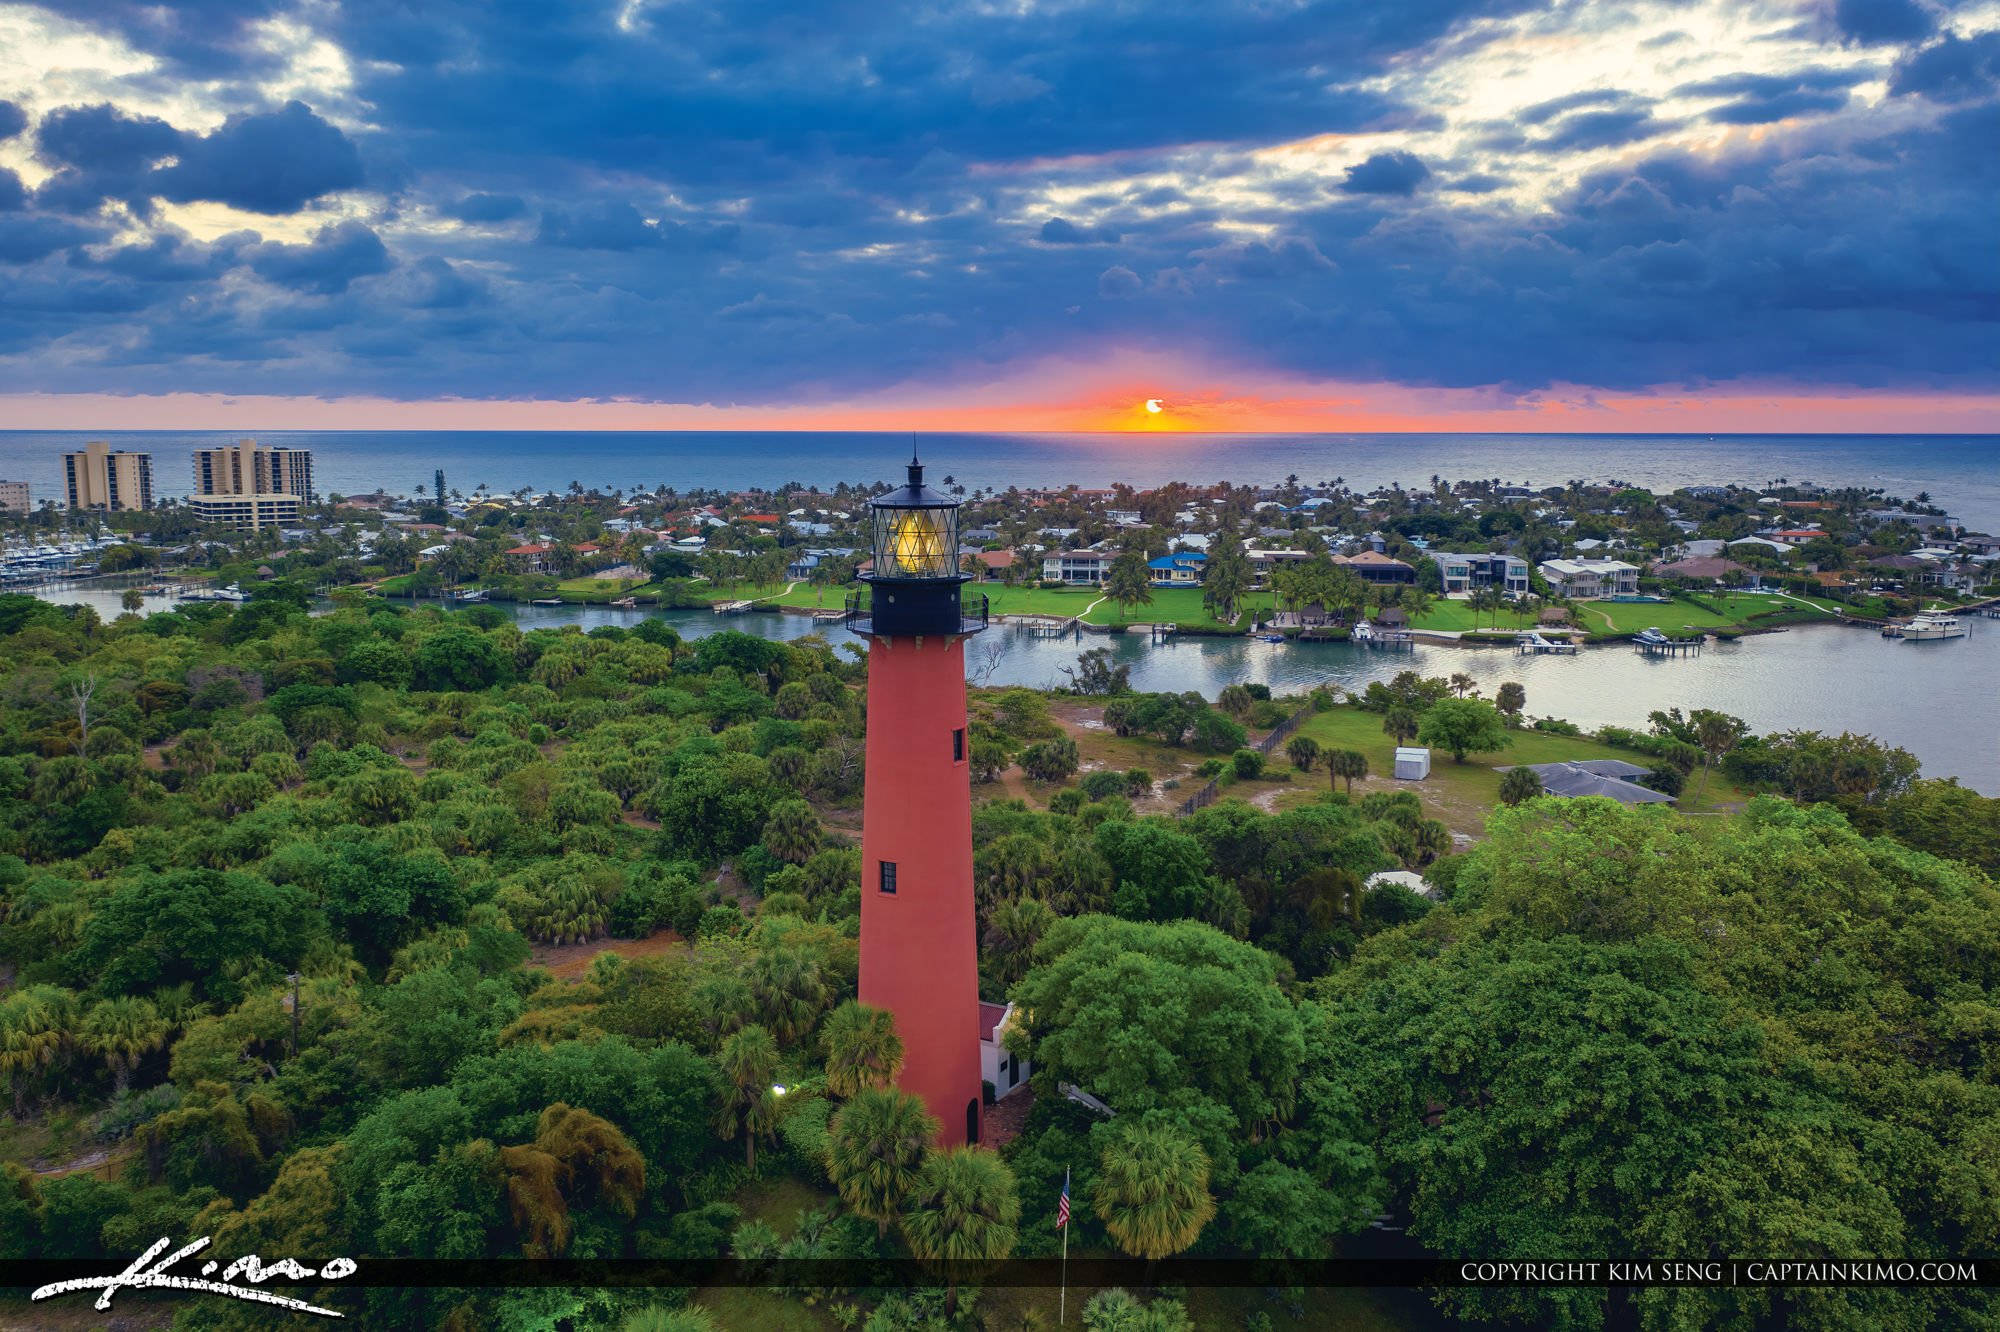 Jupiter Lighthouse Sunrise from Aerial View